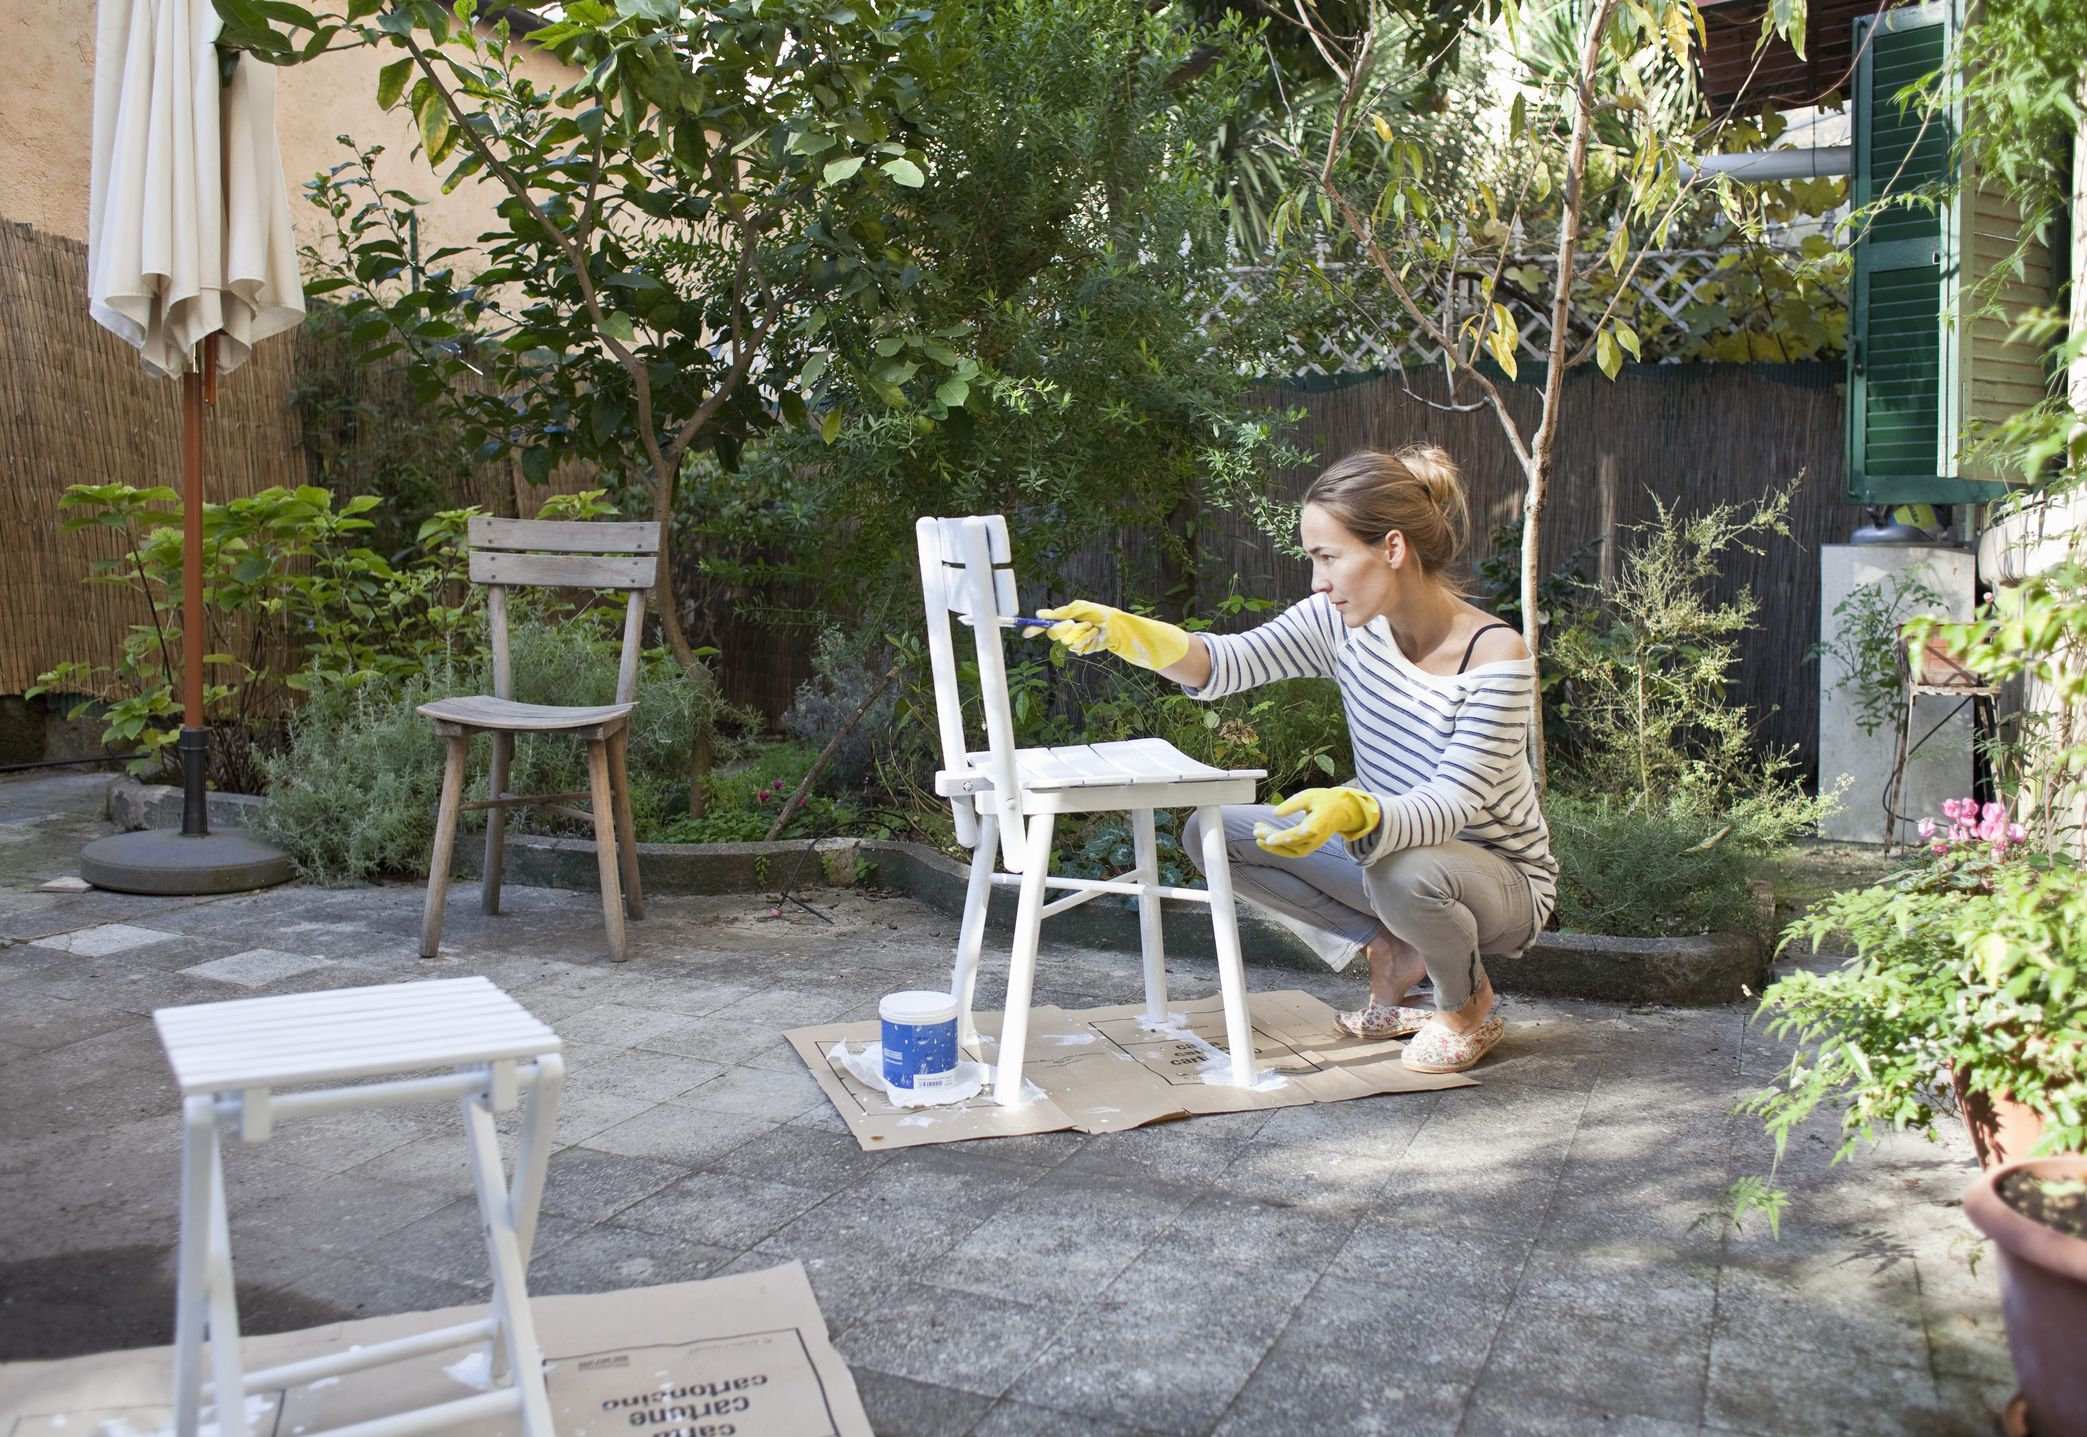 How To Paint Furniture Gest Painting Mistakes